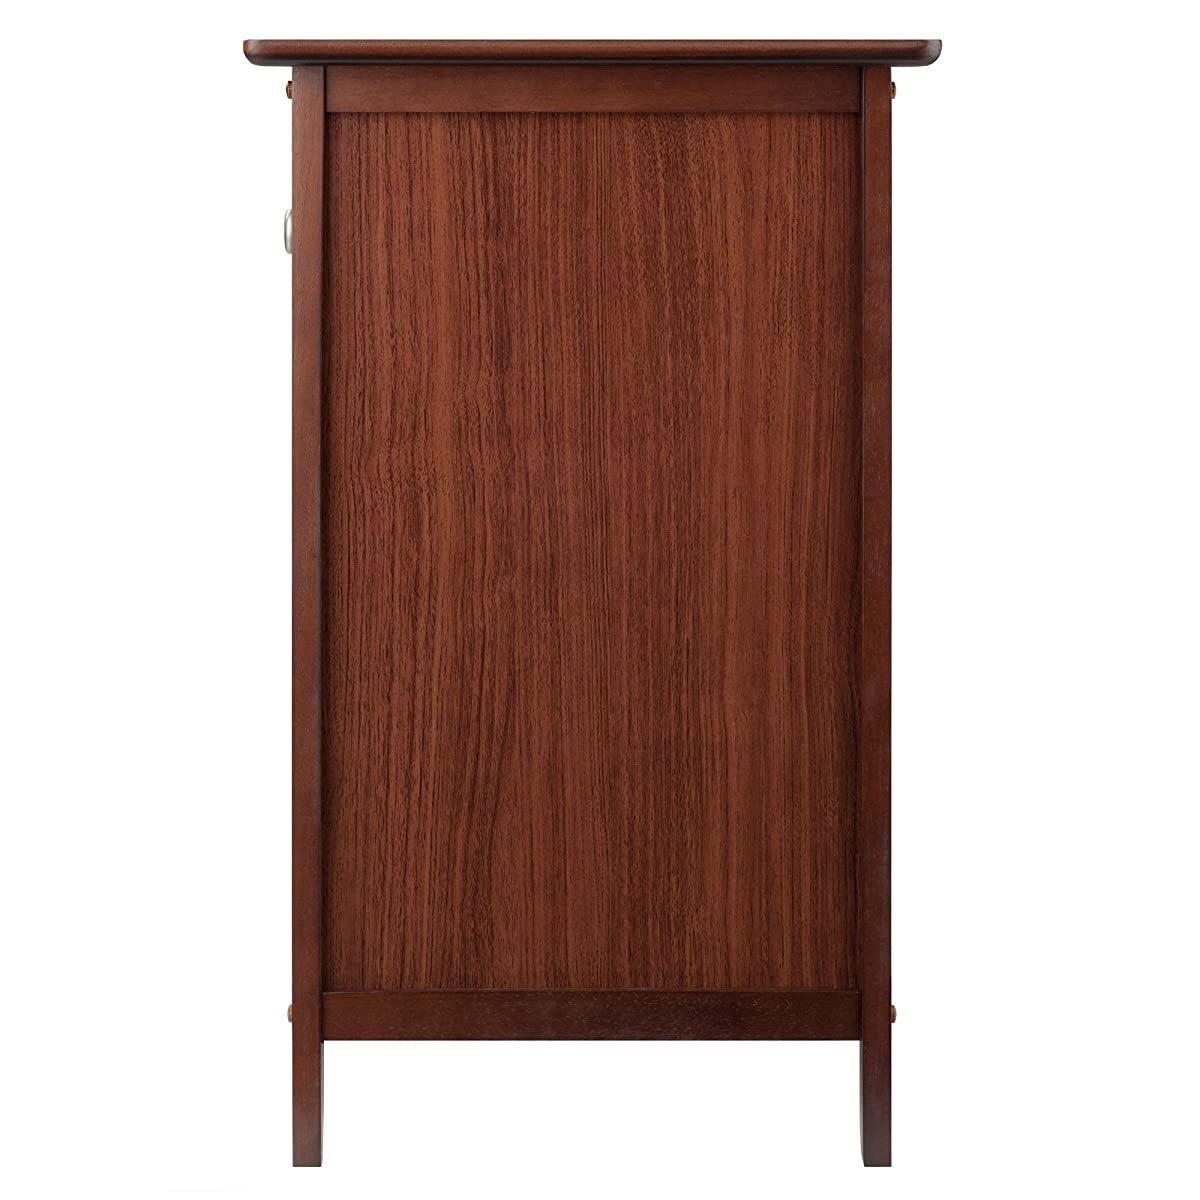 Winsome Wood Night Stand/ Accent Table with Drawer and Cabinet for Storage, Antique Walnut